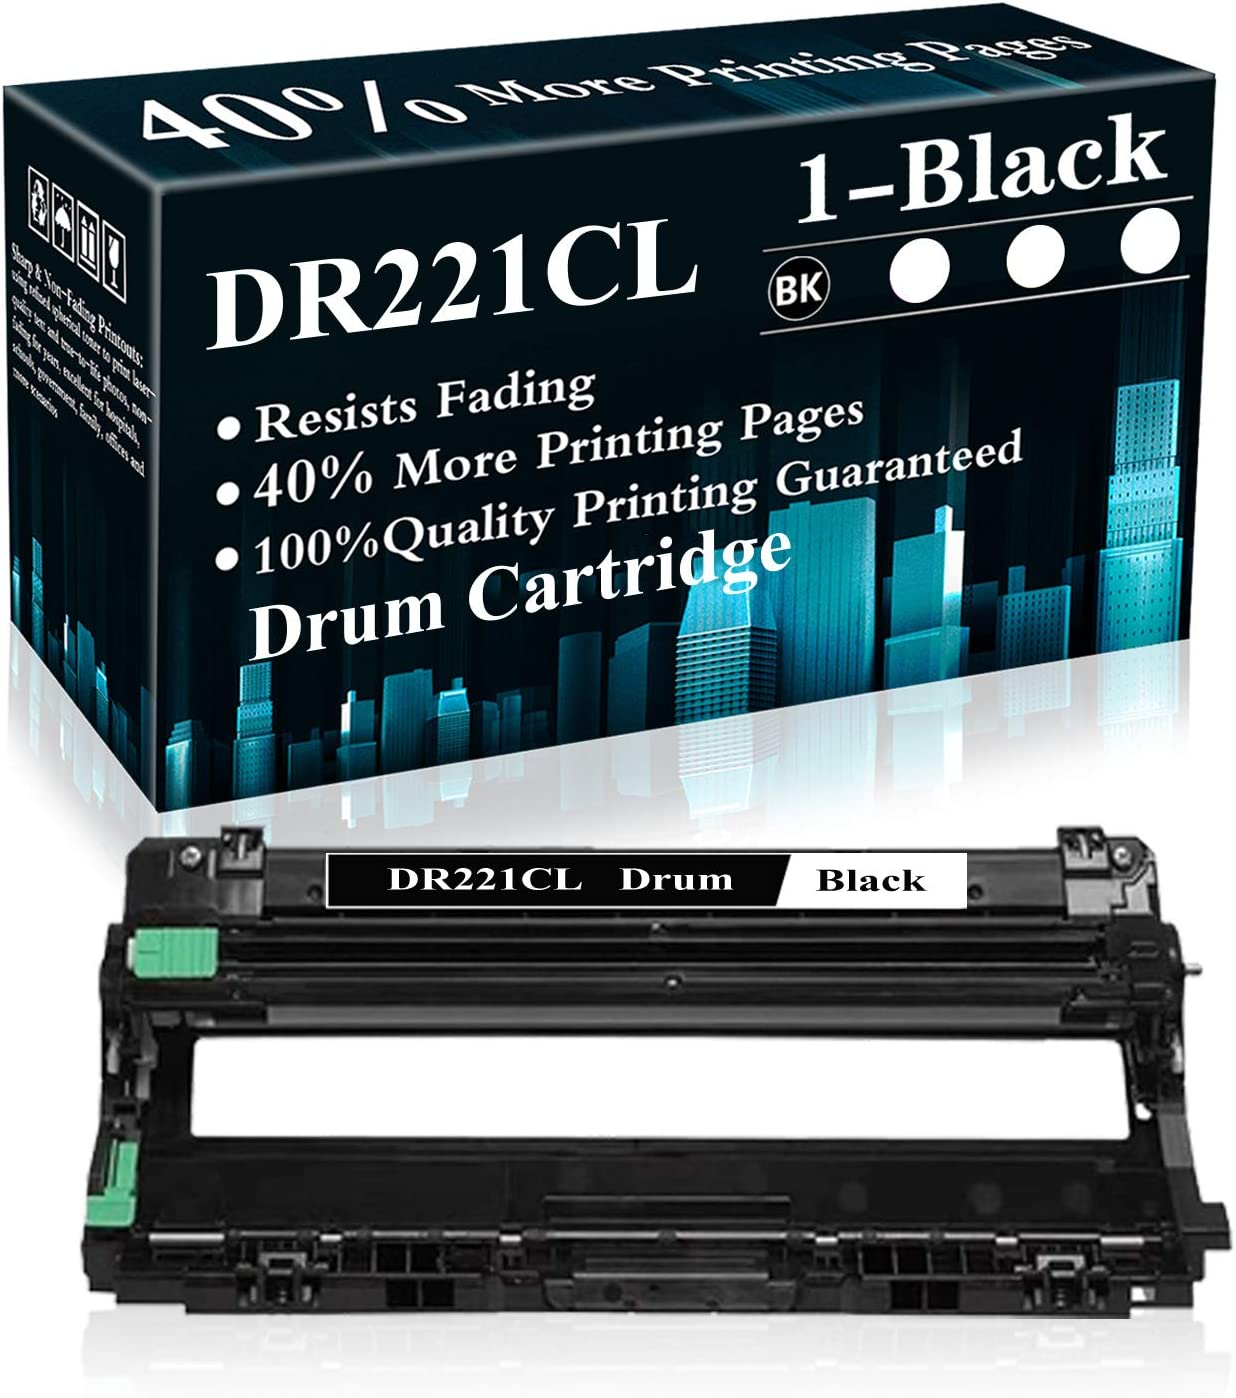 1 Black DR221CL Drum Unit Replacement for Brother HL-3140CW 3150CDN 3170CDW 3180CDW 9130CW 9140CDN 9330CDW 9340CDW 9015CDW 9020CDN Printer,Sold by TopInk